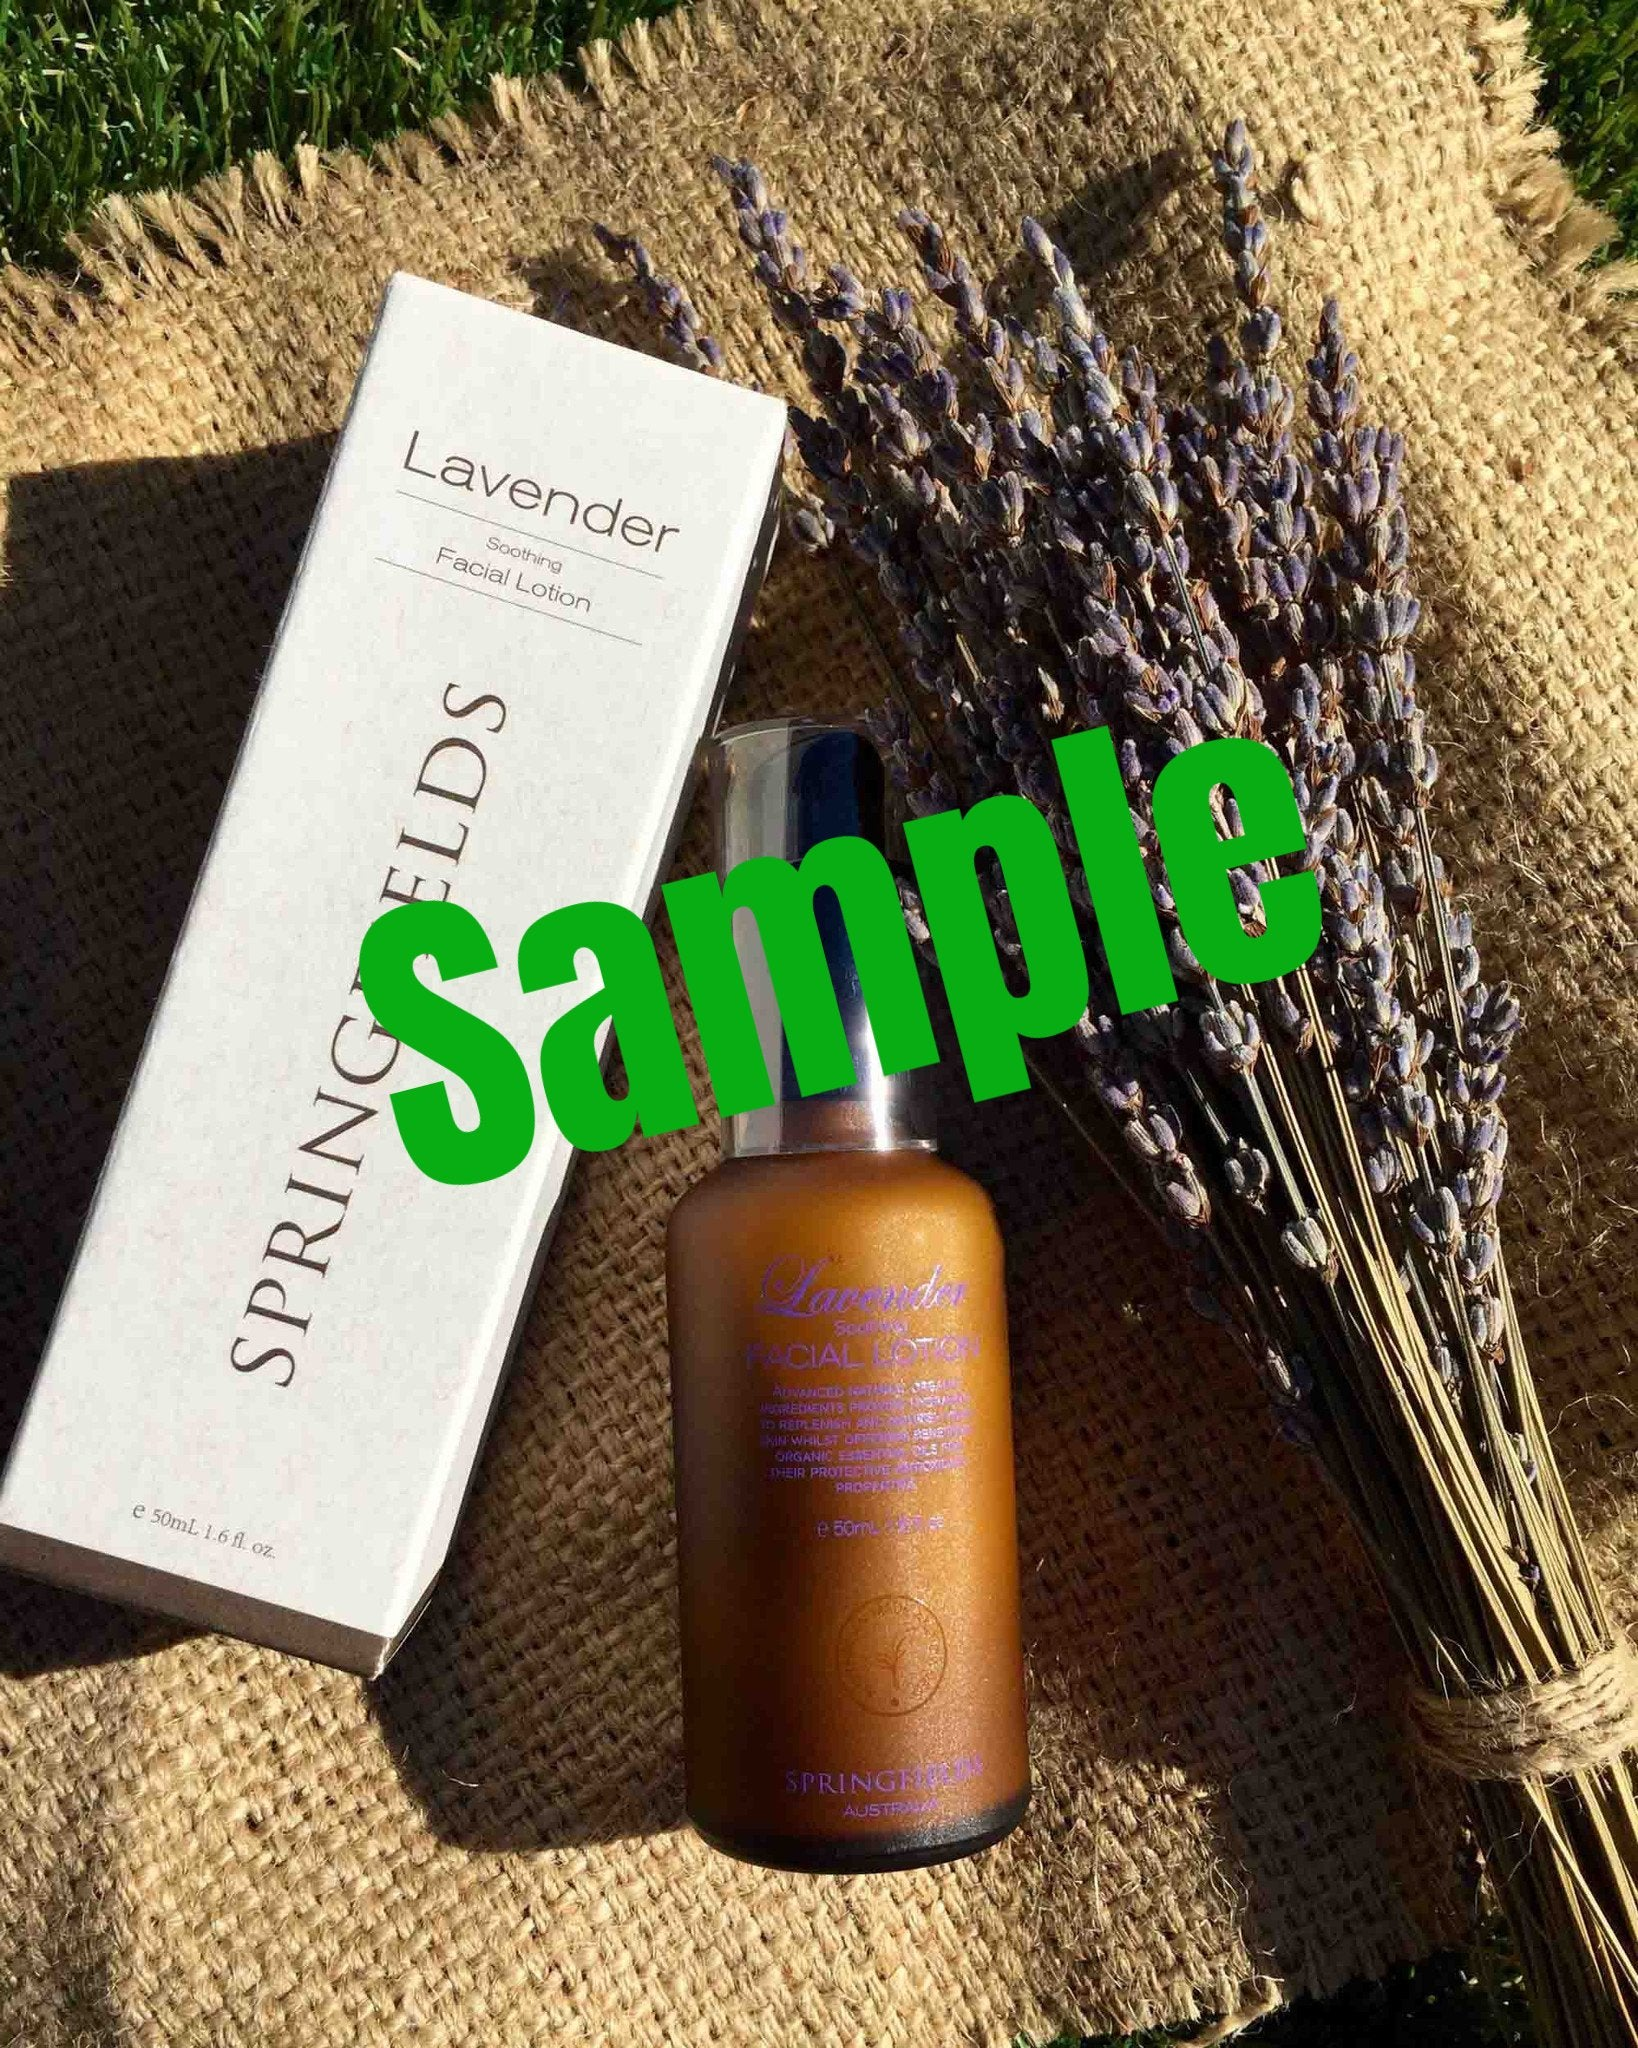 Sample - Lavender Soothing Facial Lotion 薰衣草舒緩保濕乳液